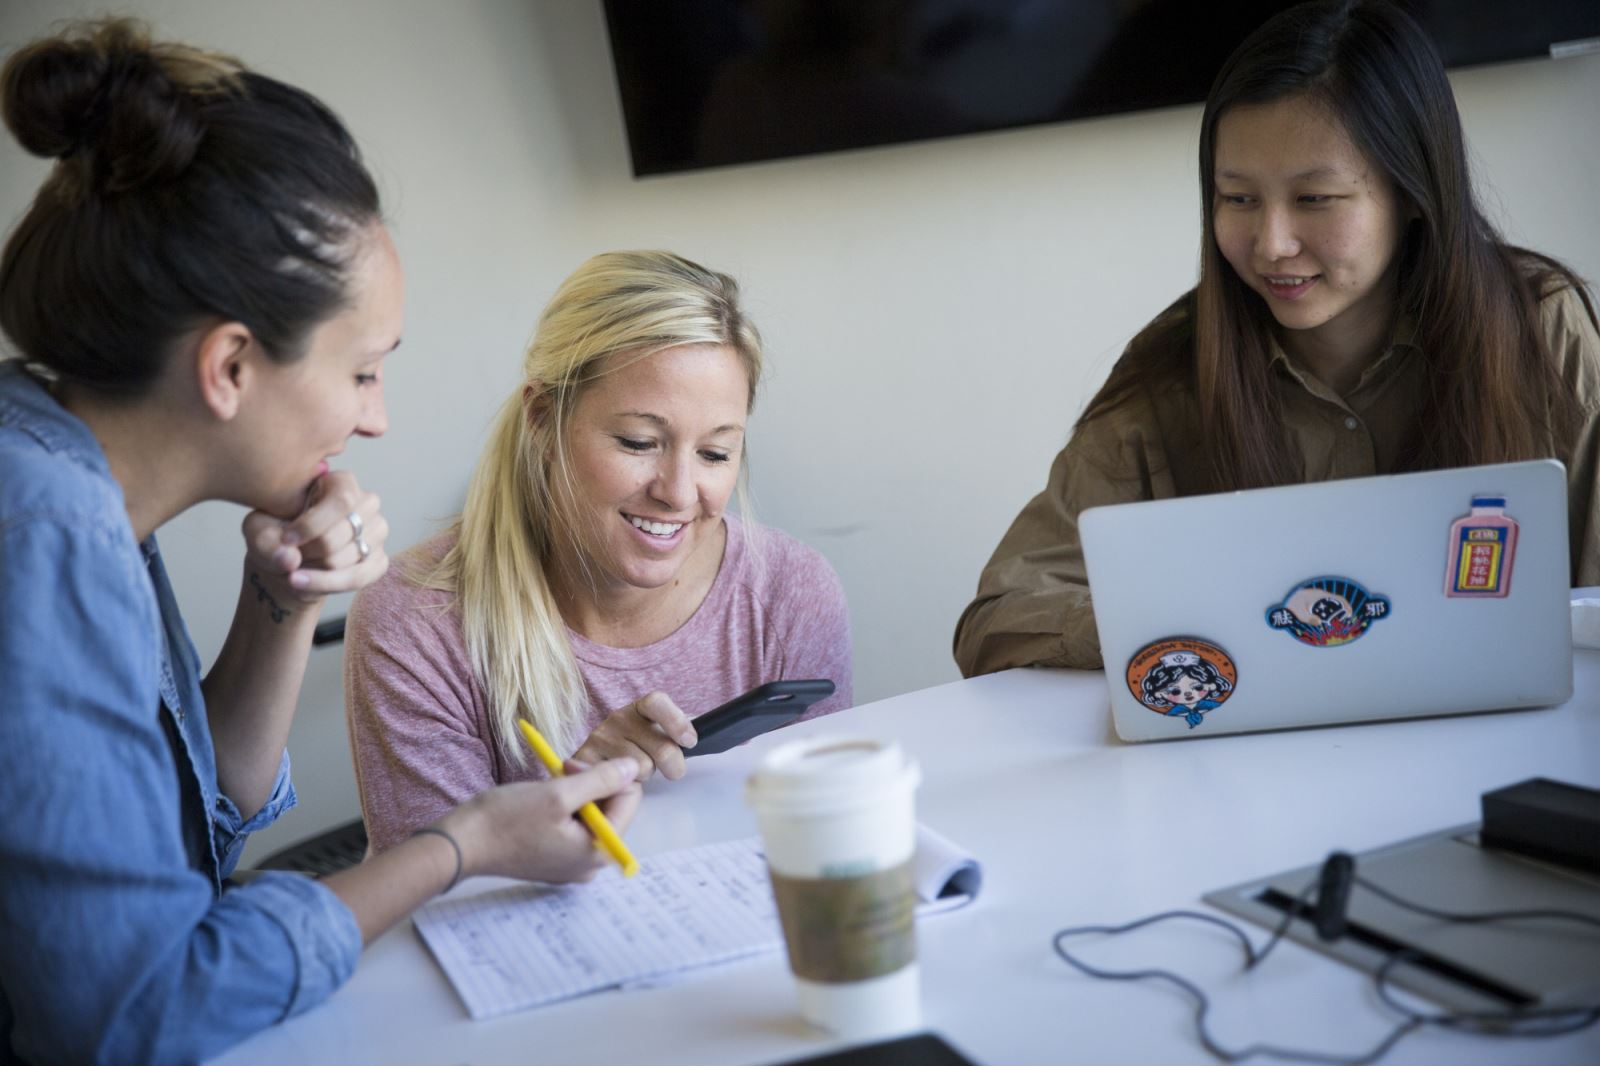 Walton College alum April Seggebruch, a co-founder of Bentonville-based Movista, mentors current students in the University of Arkansas' New Venture Development class.  (l to r) Leslie Godwin, April Seggebruch, Xiaochi Ma.  Photo credit: Garrett Hubbard